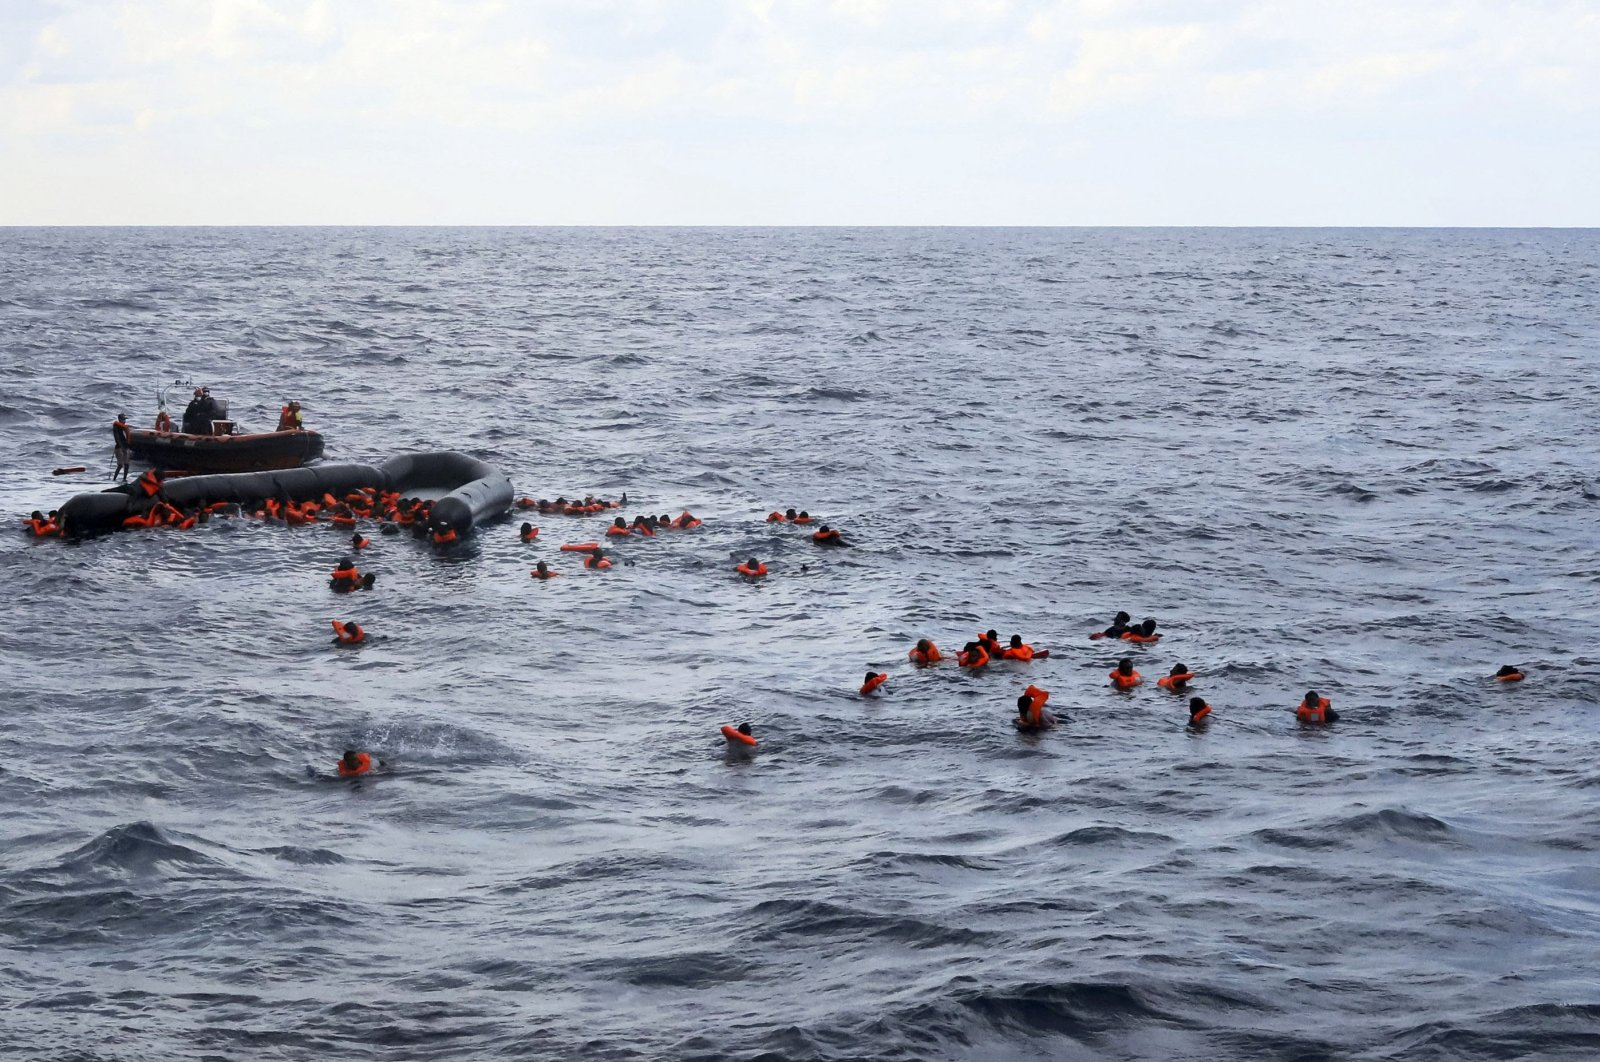 Refugees and migrants are rescued by members of the Spanish NGO Proactiva Open Arms, after leaving Libya trying to reach European soil aboard an overcrowded rubber boat in the Mediterranean Sea, Wednesday, Nov. 11, 2020. (AP File Photo)